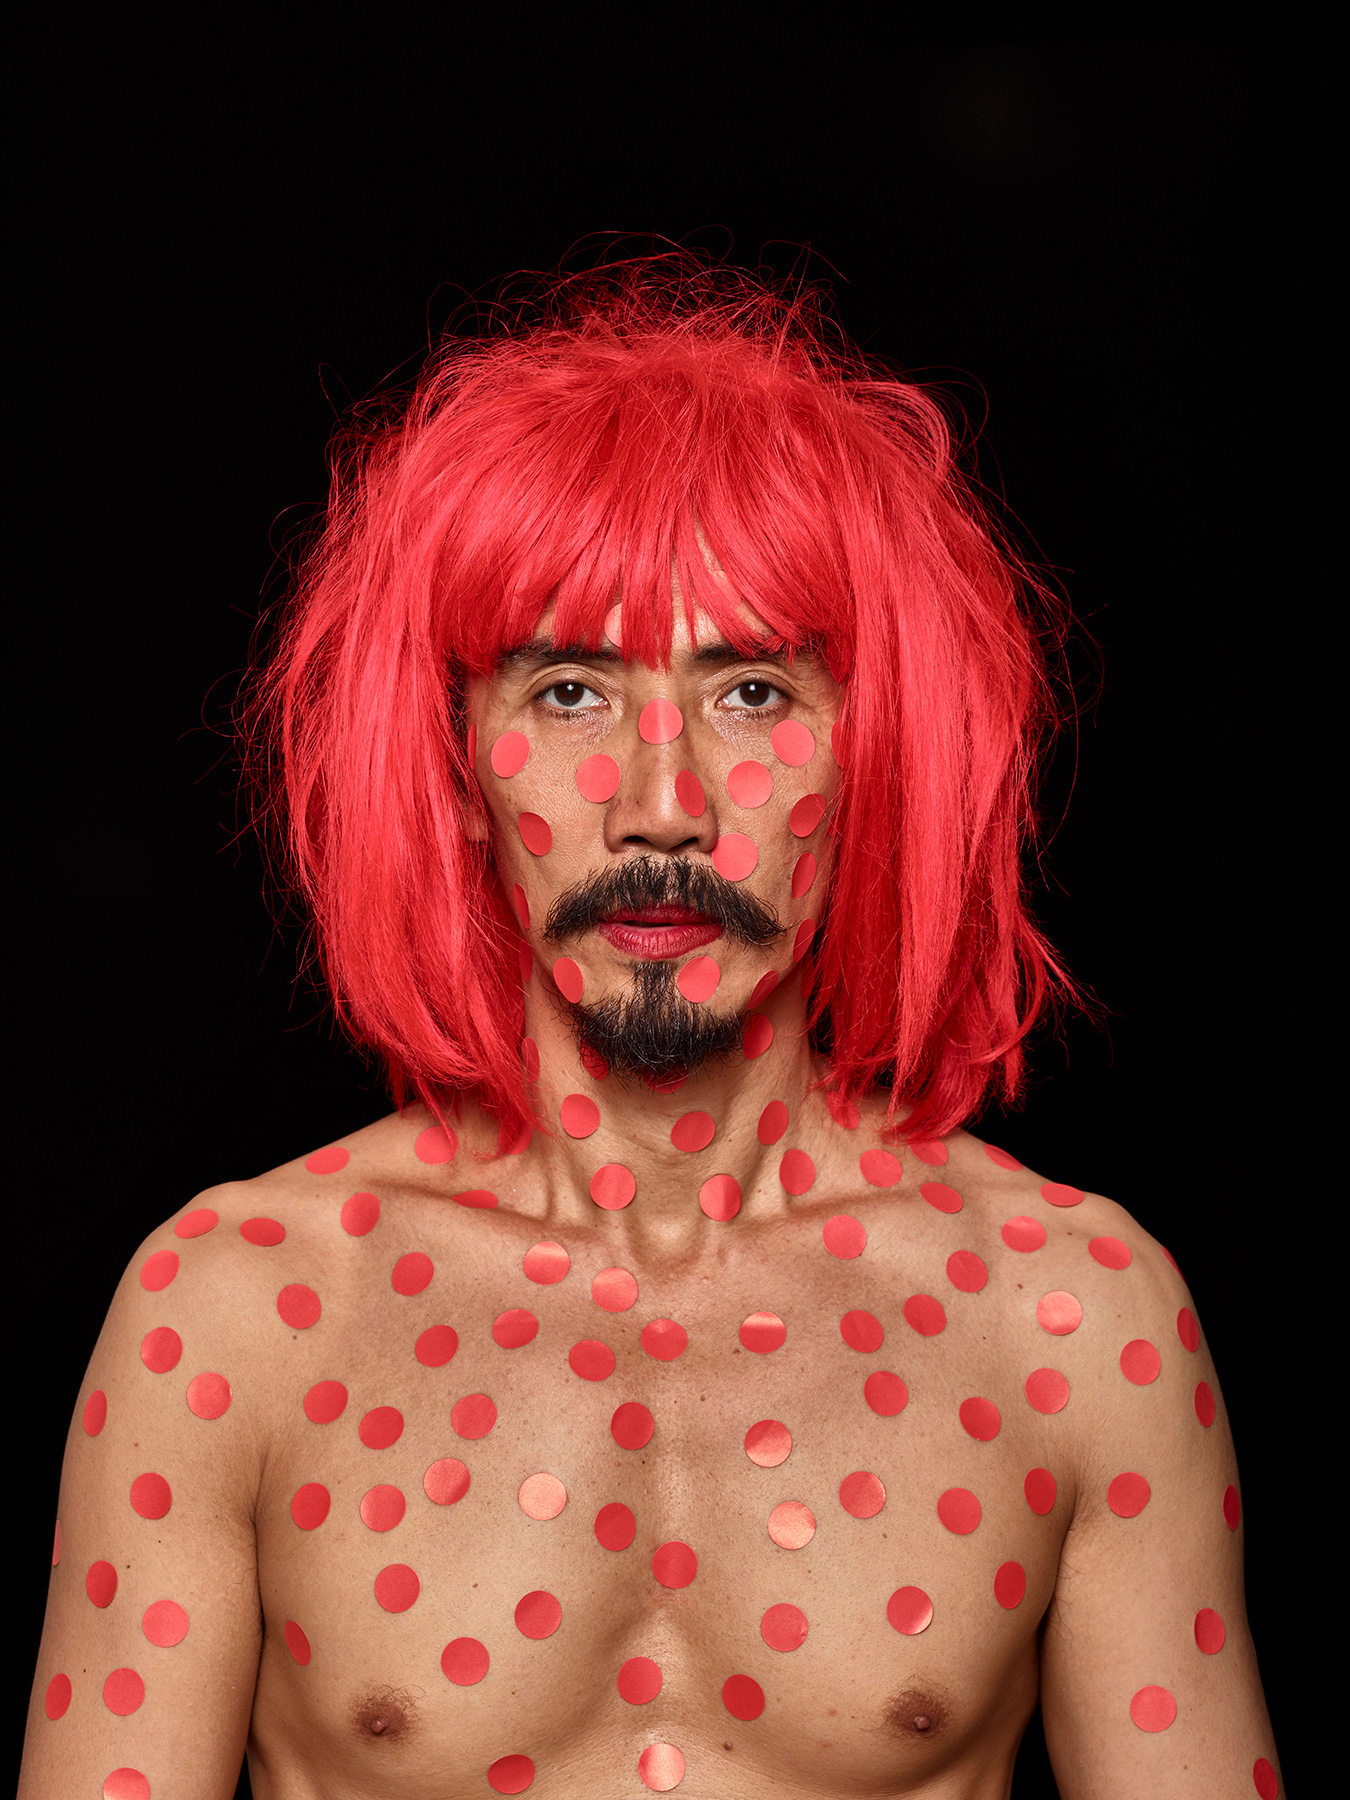 21 Aug 2017: Derong is in a red wig and has red round stickers stuck all over his bare face and body